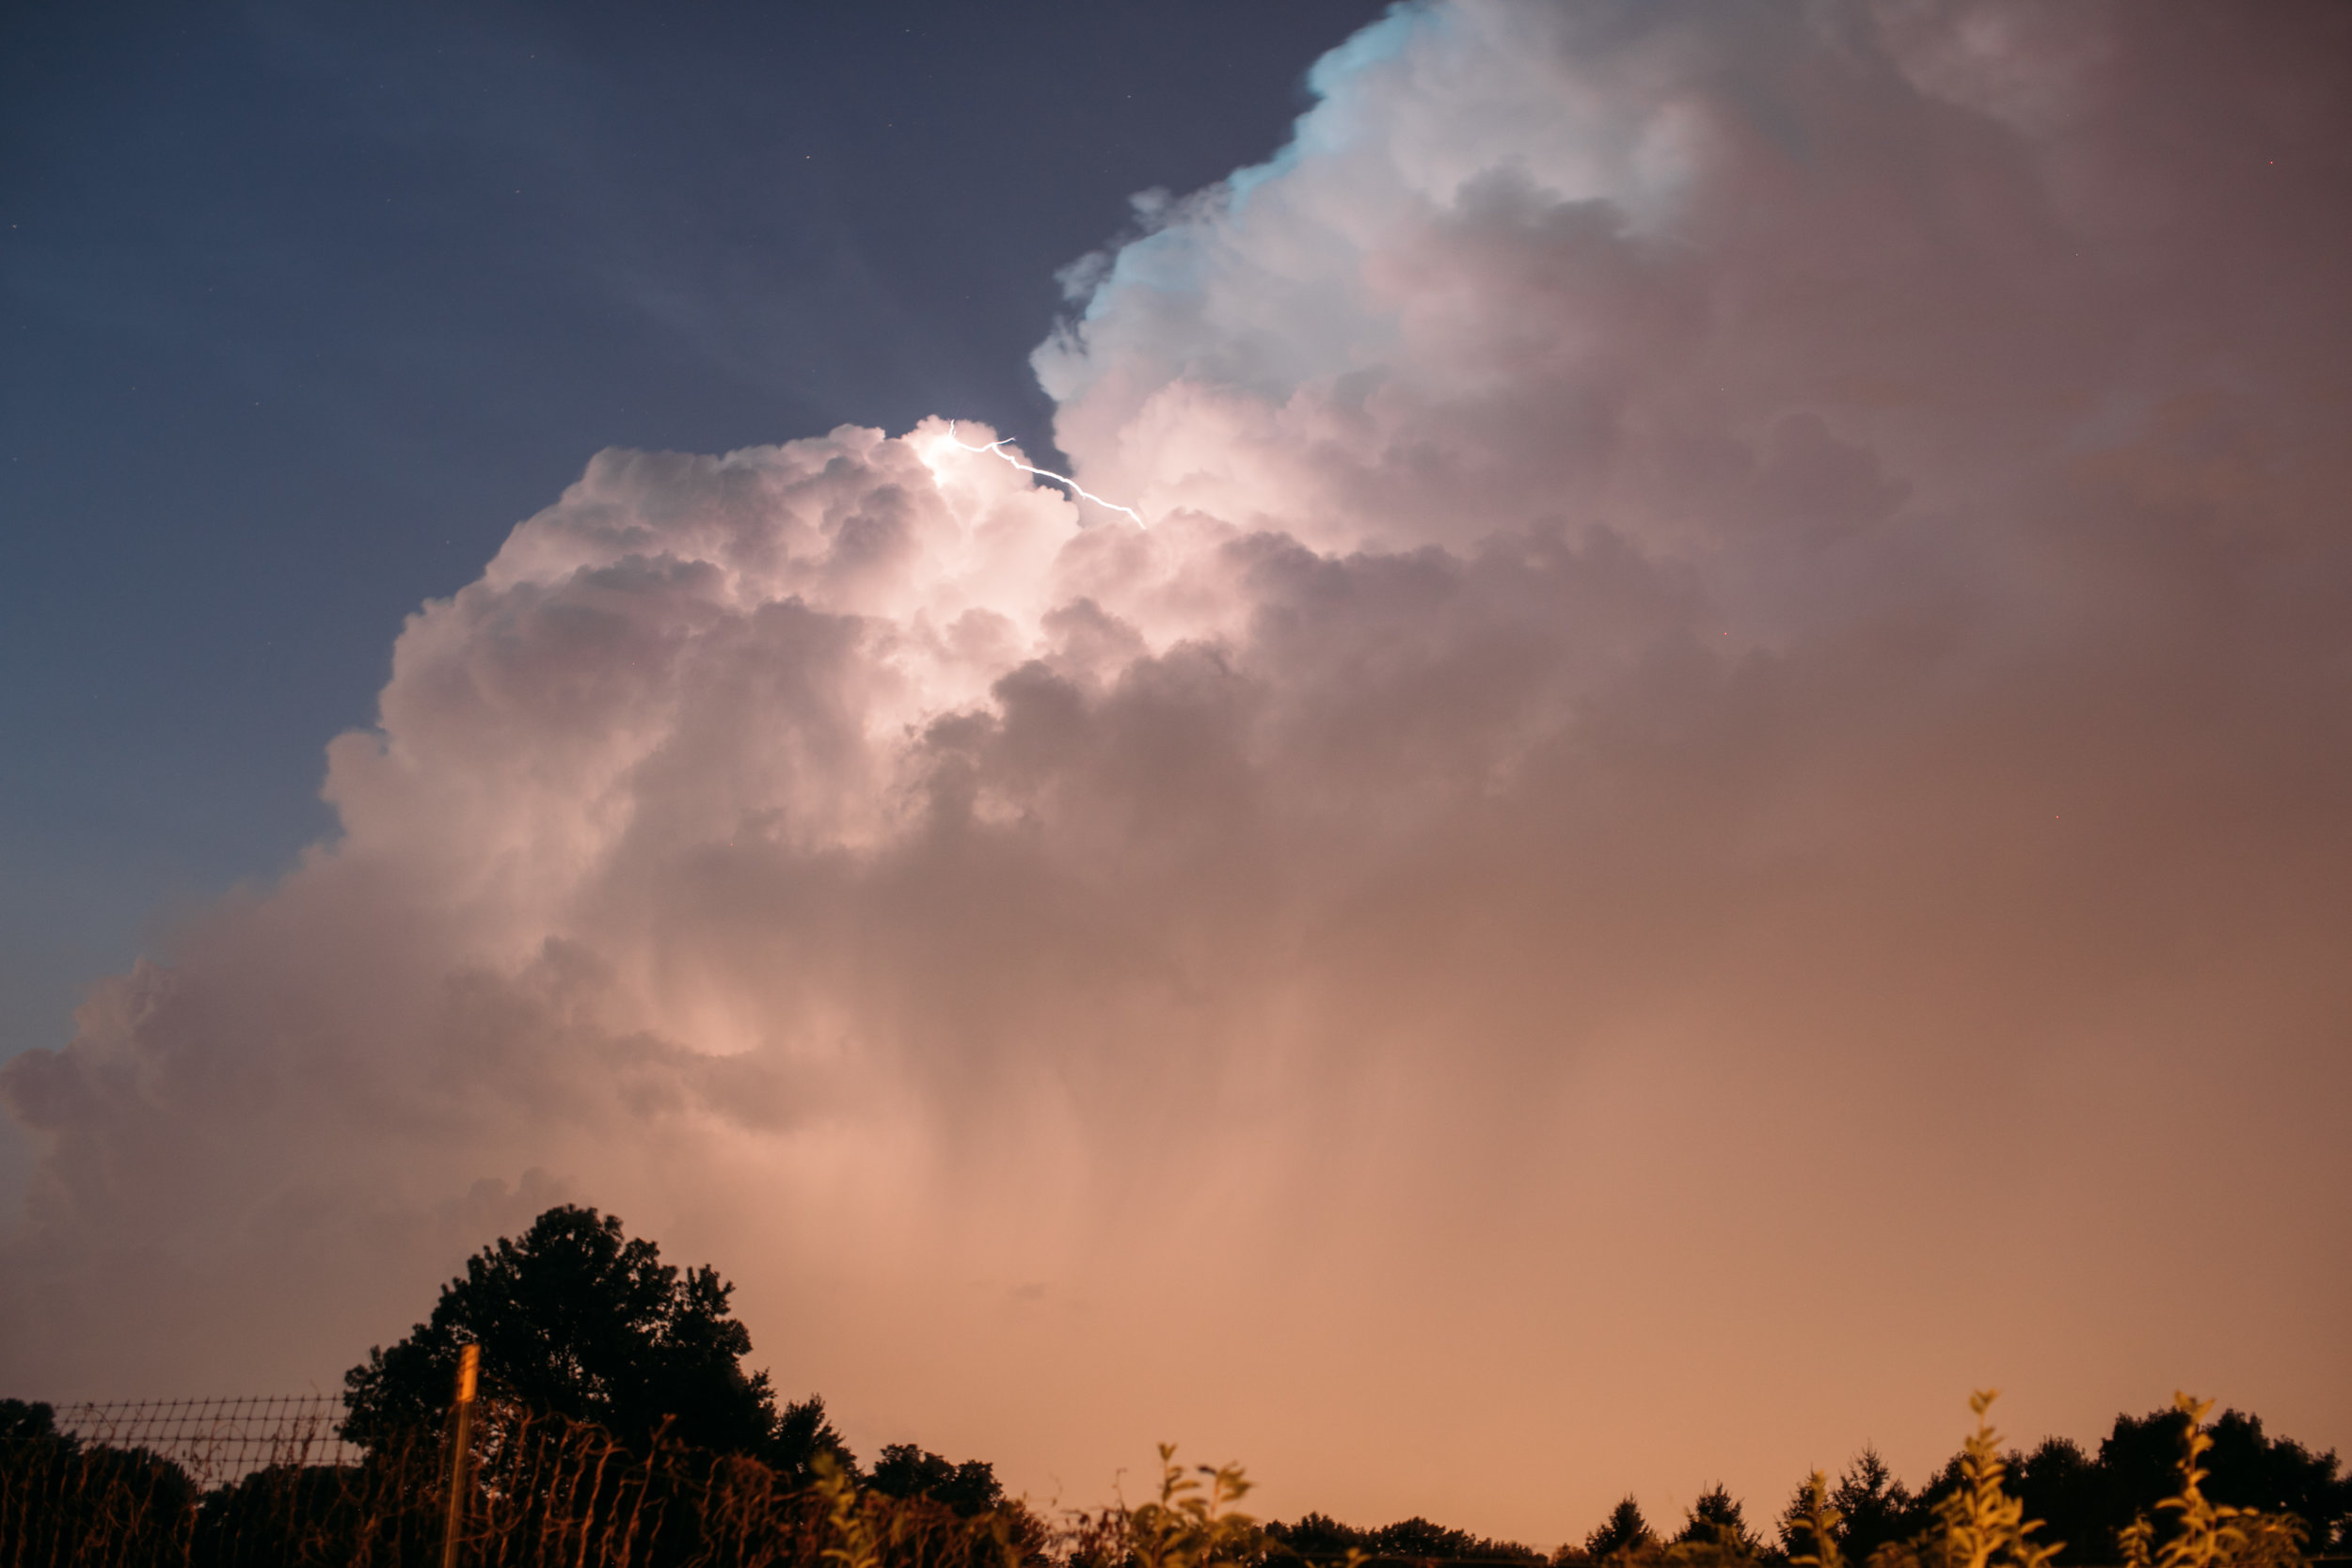 Kate captured some of the heat lightning that mesmerized us during dinner...Magic I tell you!!!